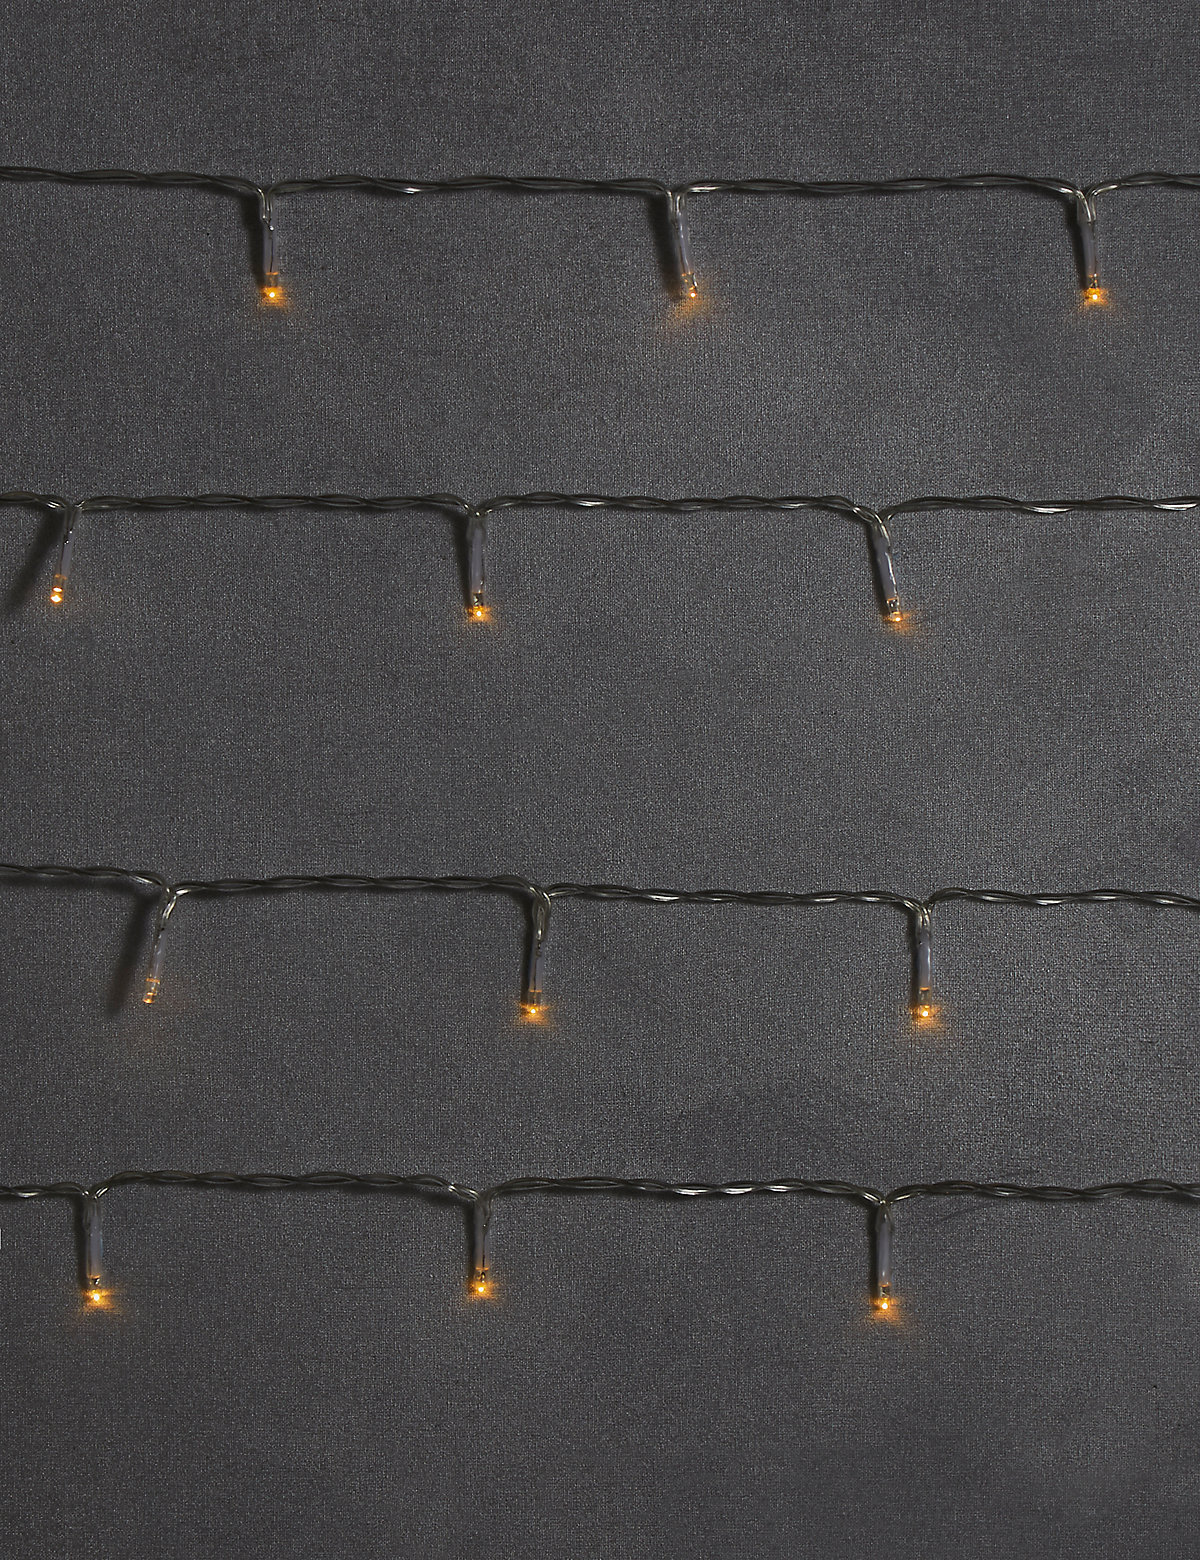 Image of 100 Warm White String Lights